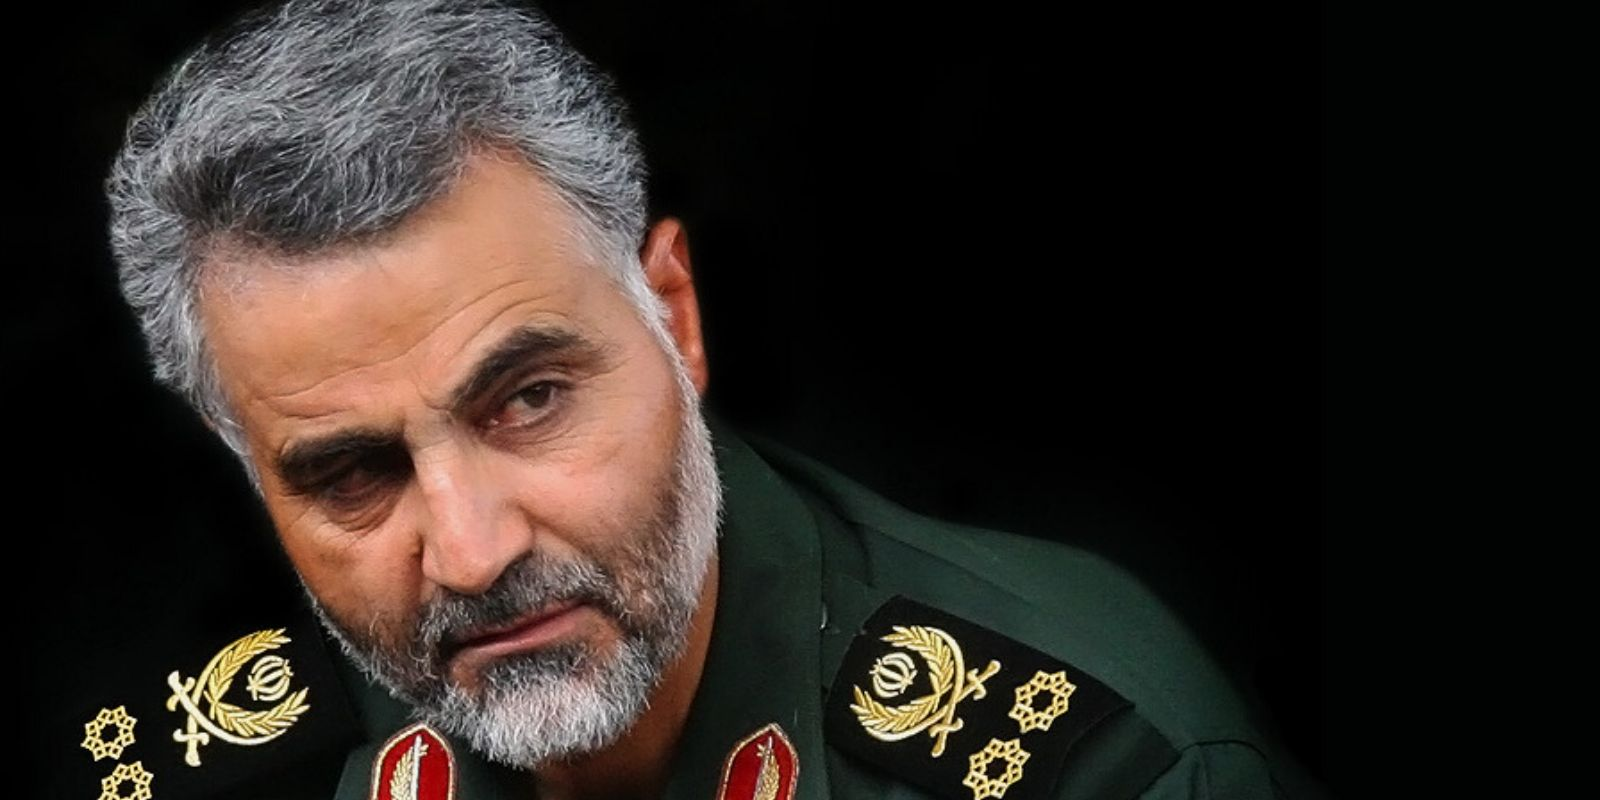 The death of Soleimani leads to tense clashes in Canada